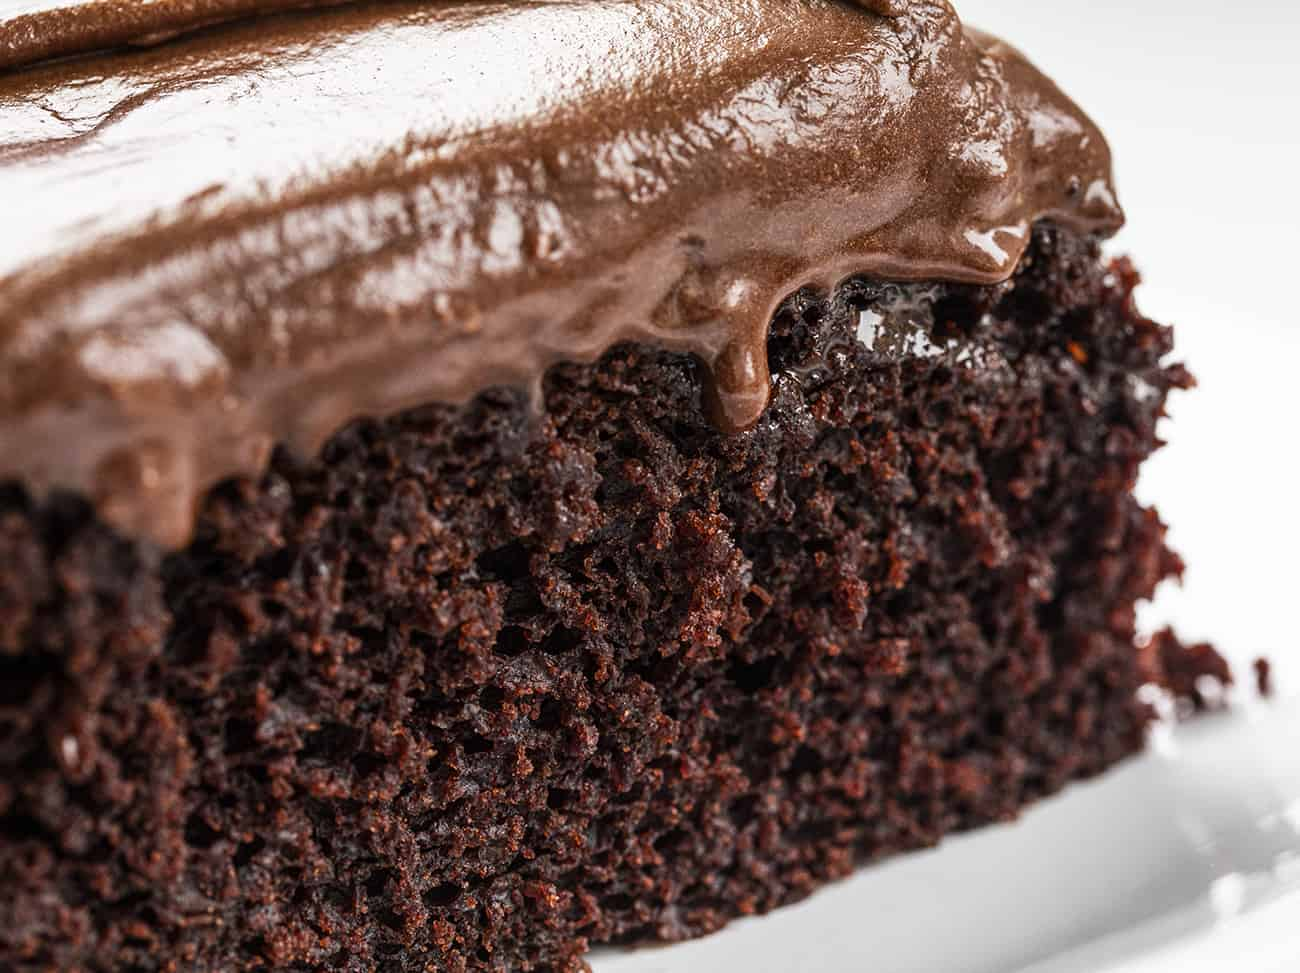 Close up of Chocolate Depression Cake with Chocolate Frosting Dripping